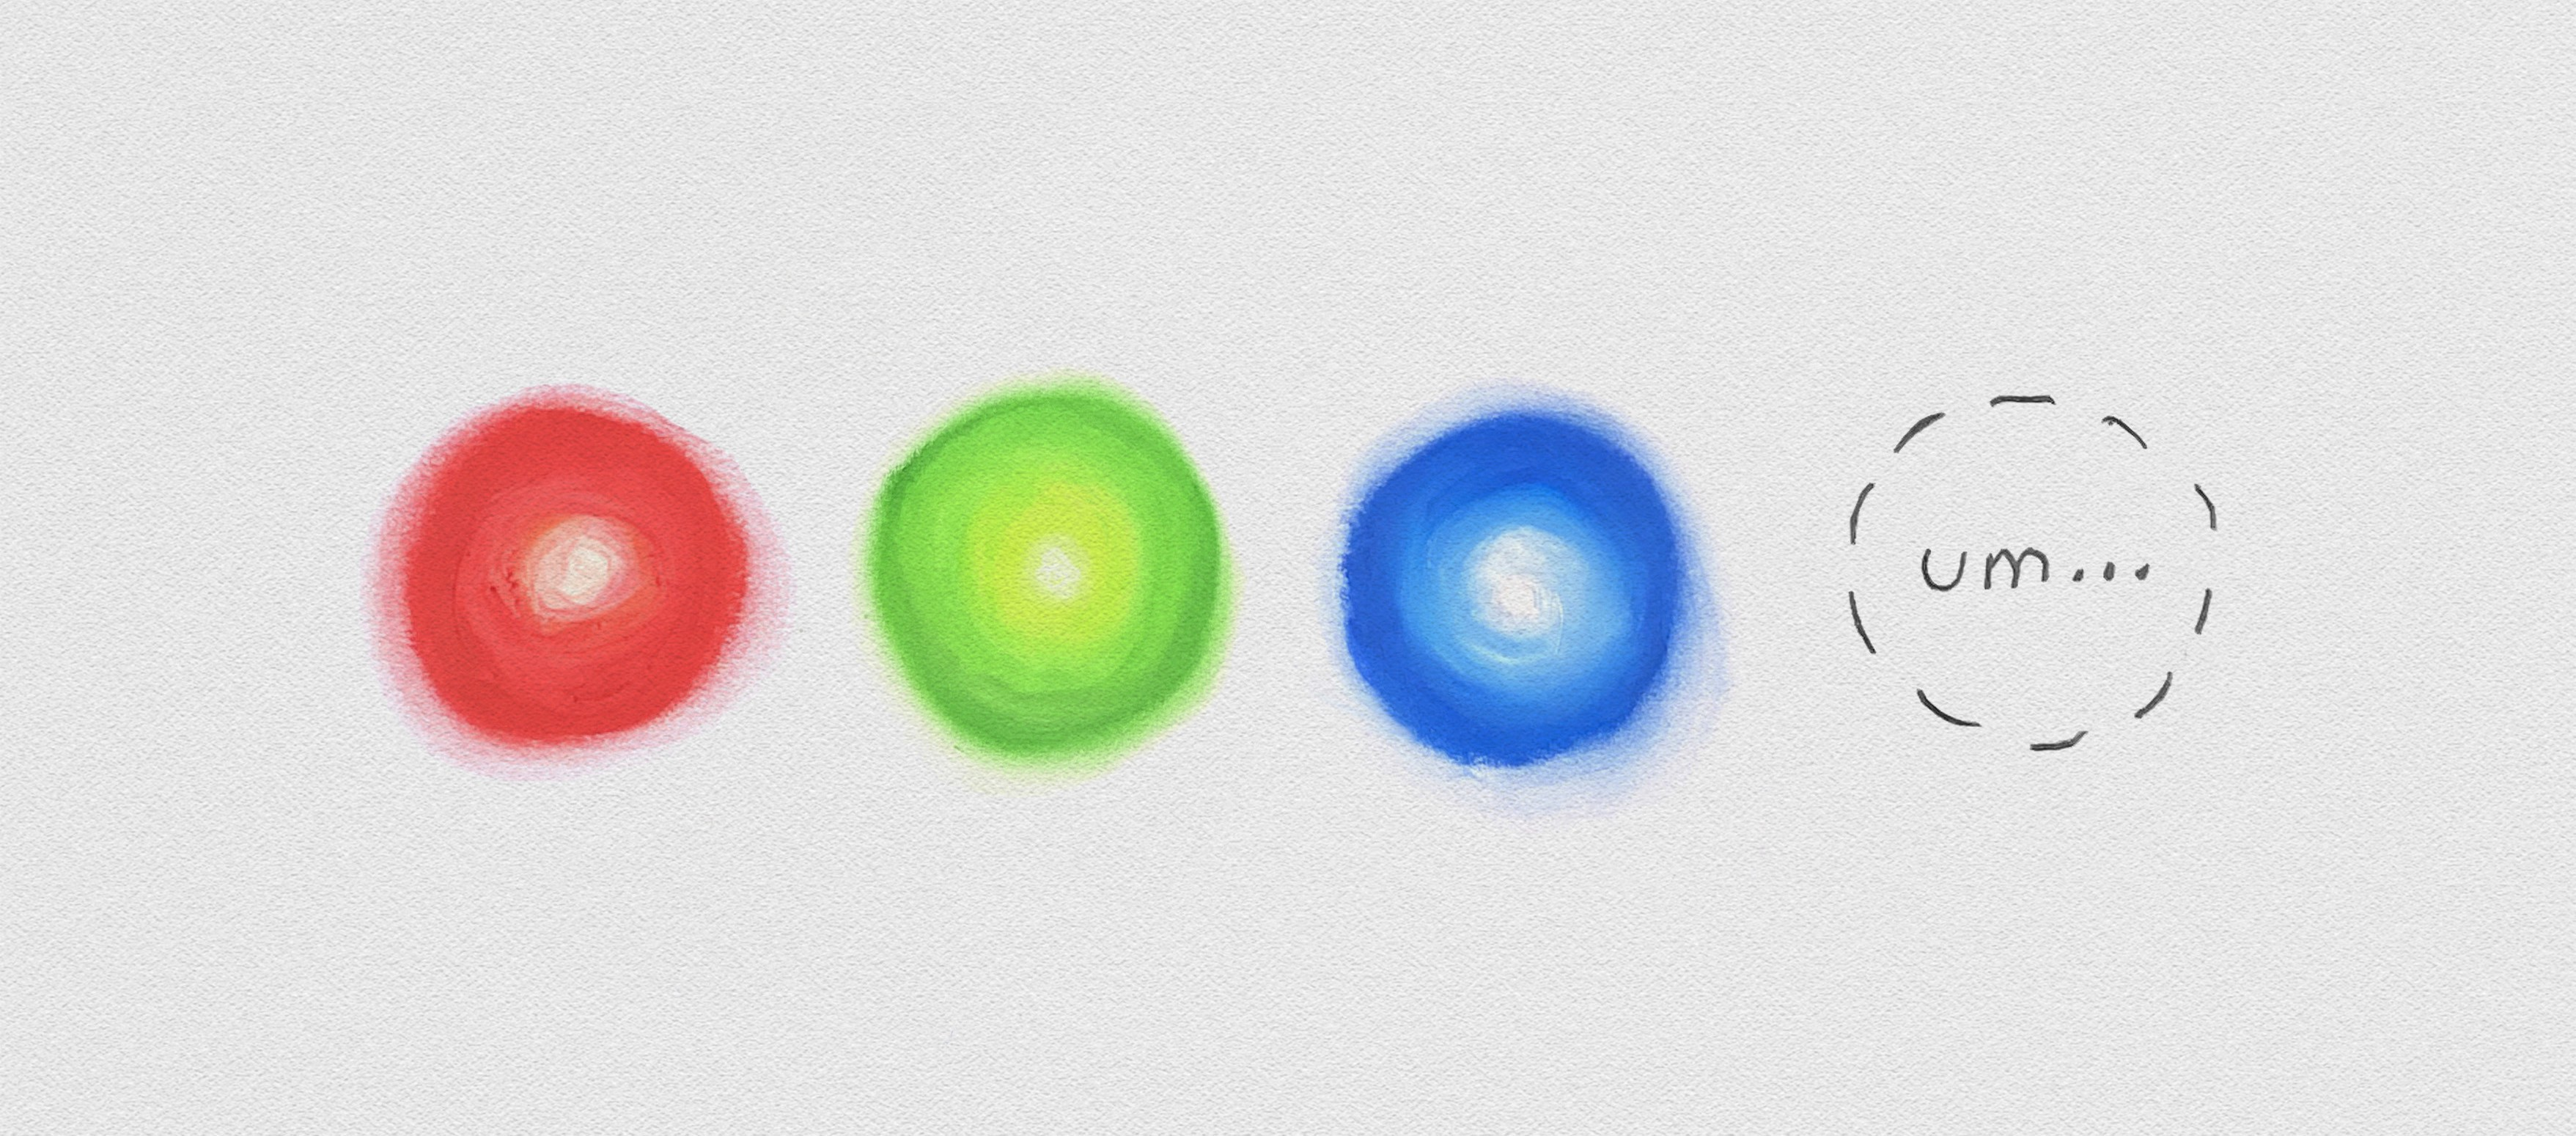 Three dots representing good cheap and fast, and a fourth empty dot.